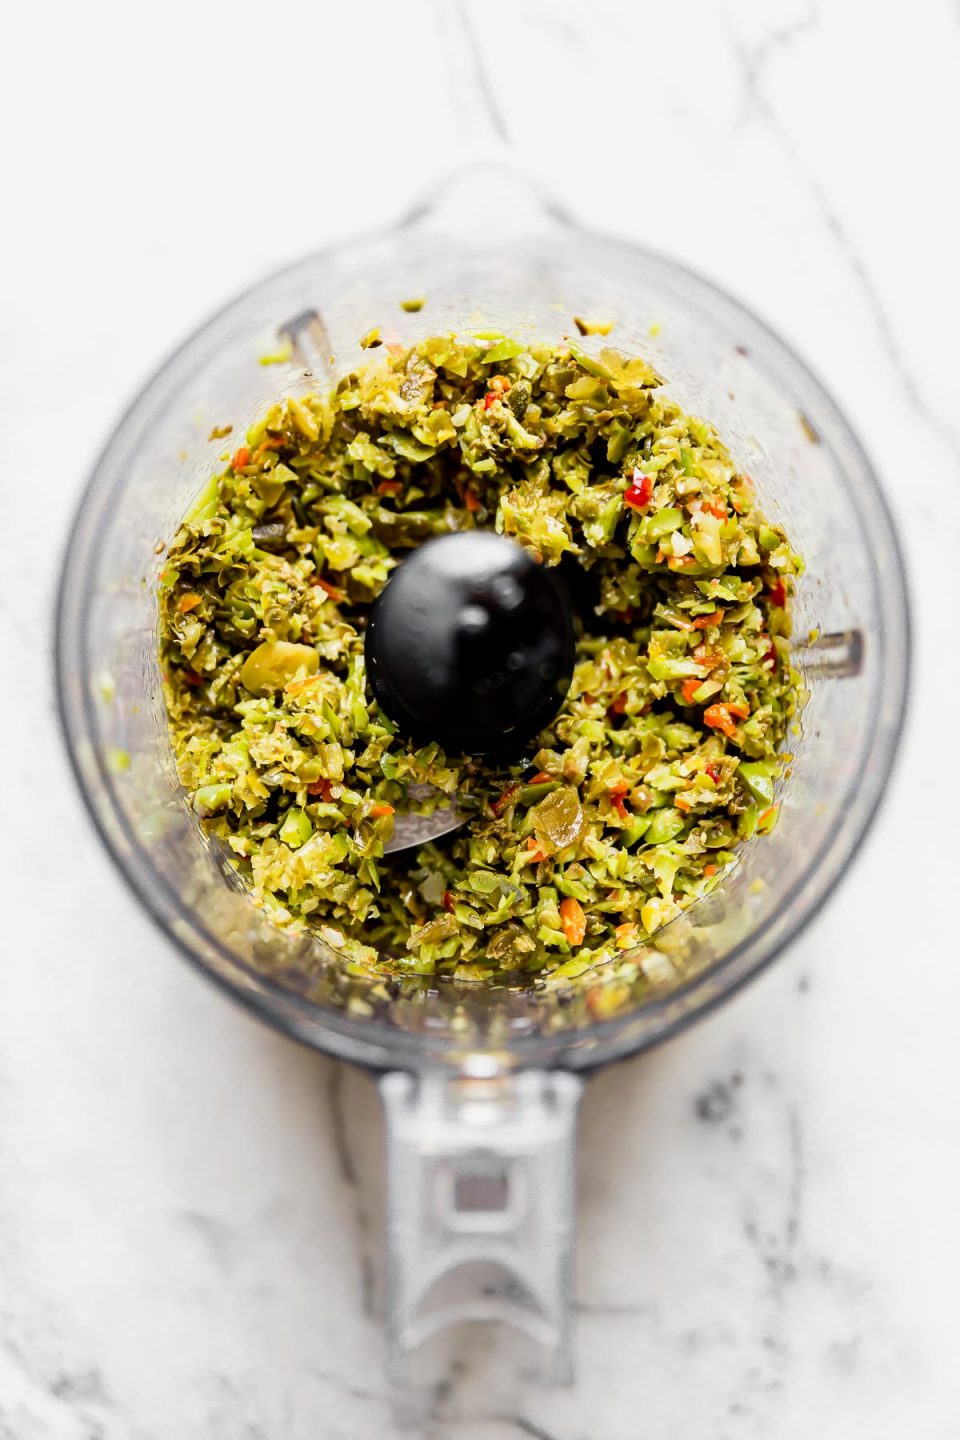 Finely chopped castelvetrano-giardiniera relish in the bowl of a small food processor, placed atop a white marble surface.